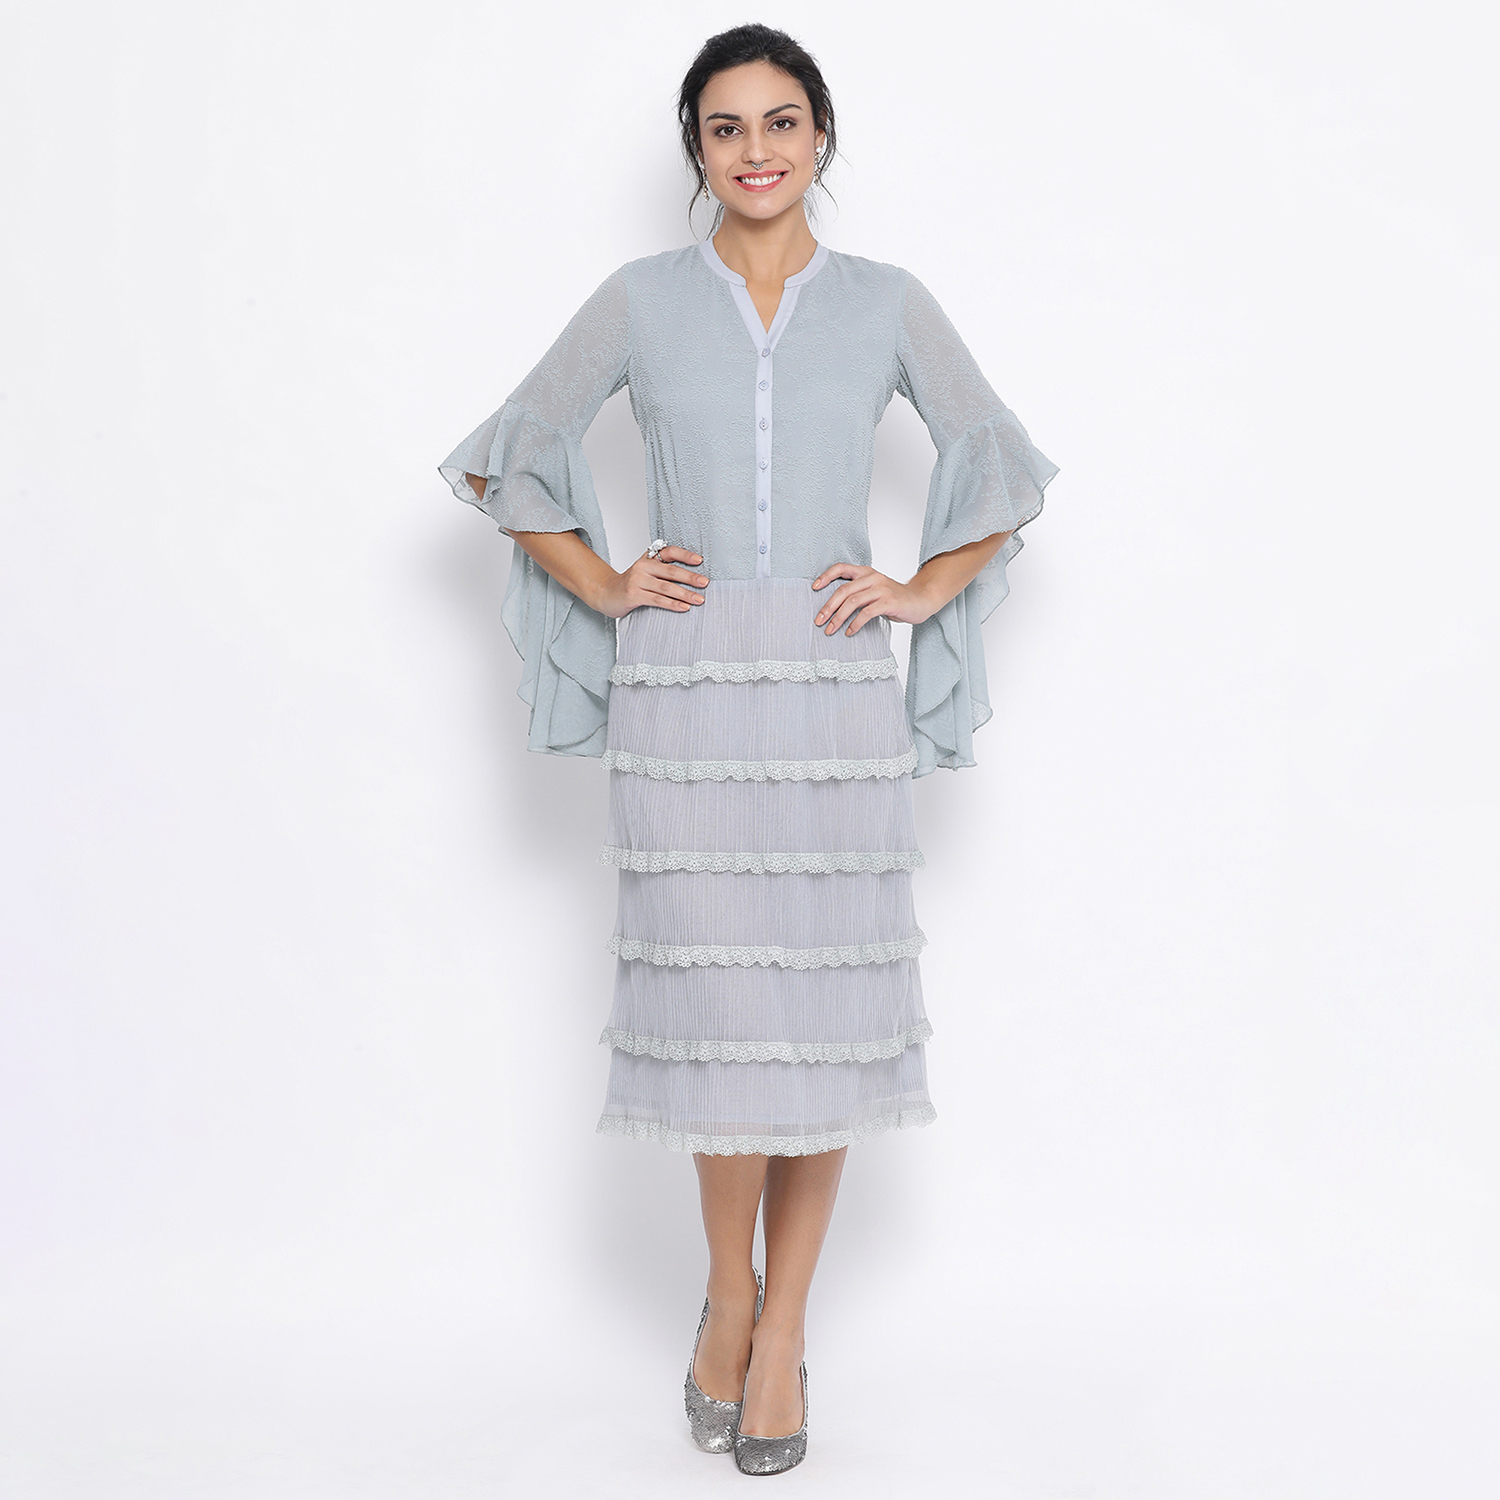 Buy Light Blue Dress With Lace And Bell Sleeves For Women